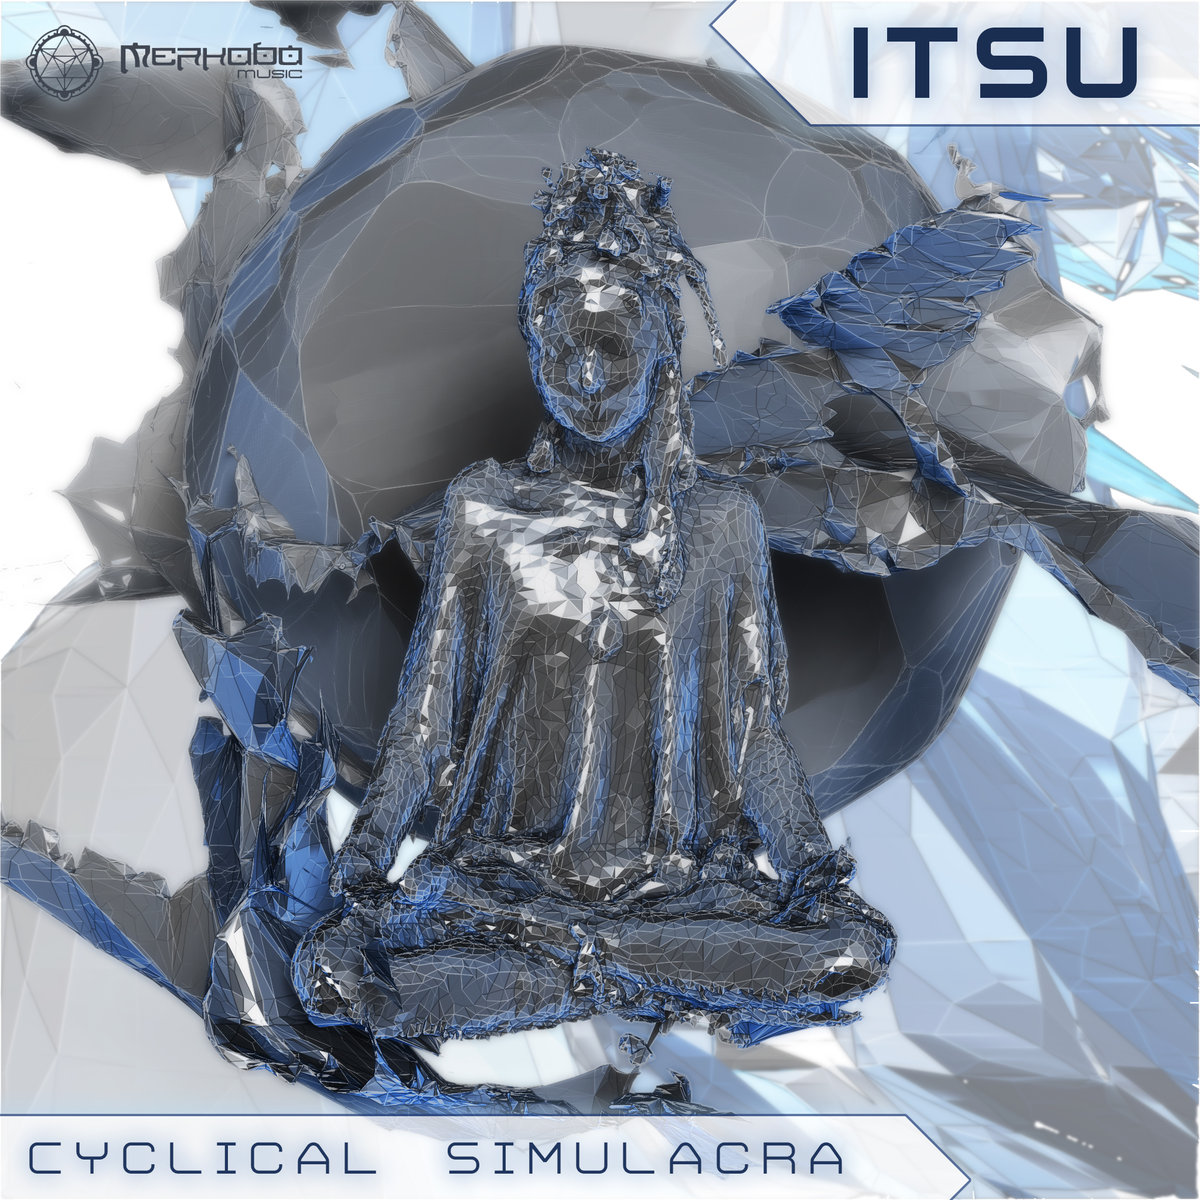 Itsu - Tablongated @ 'Cyclical Simulacra' album (electronic, ambient)